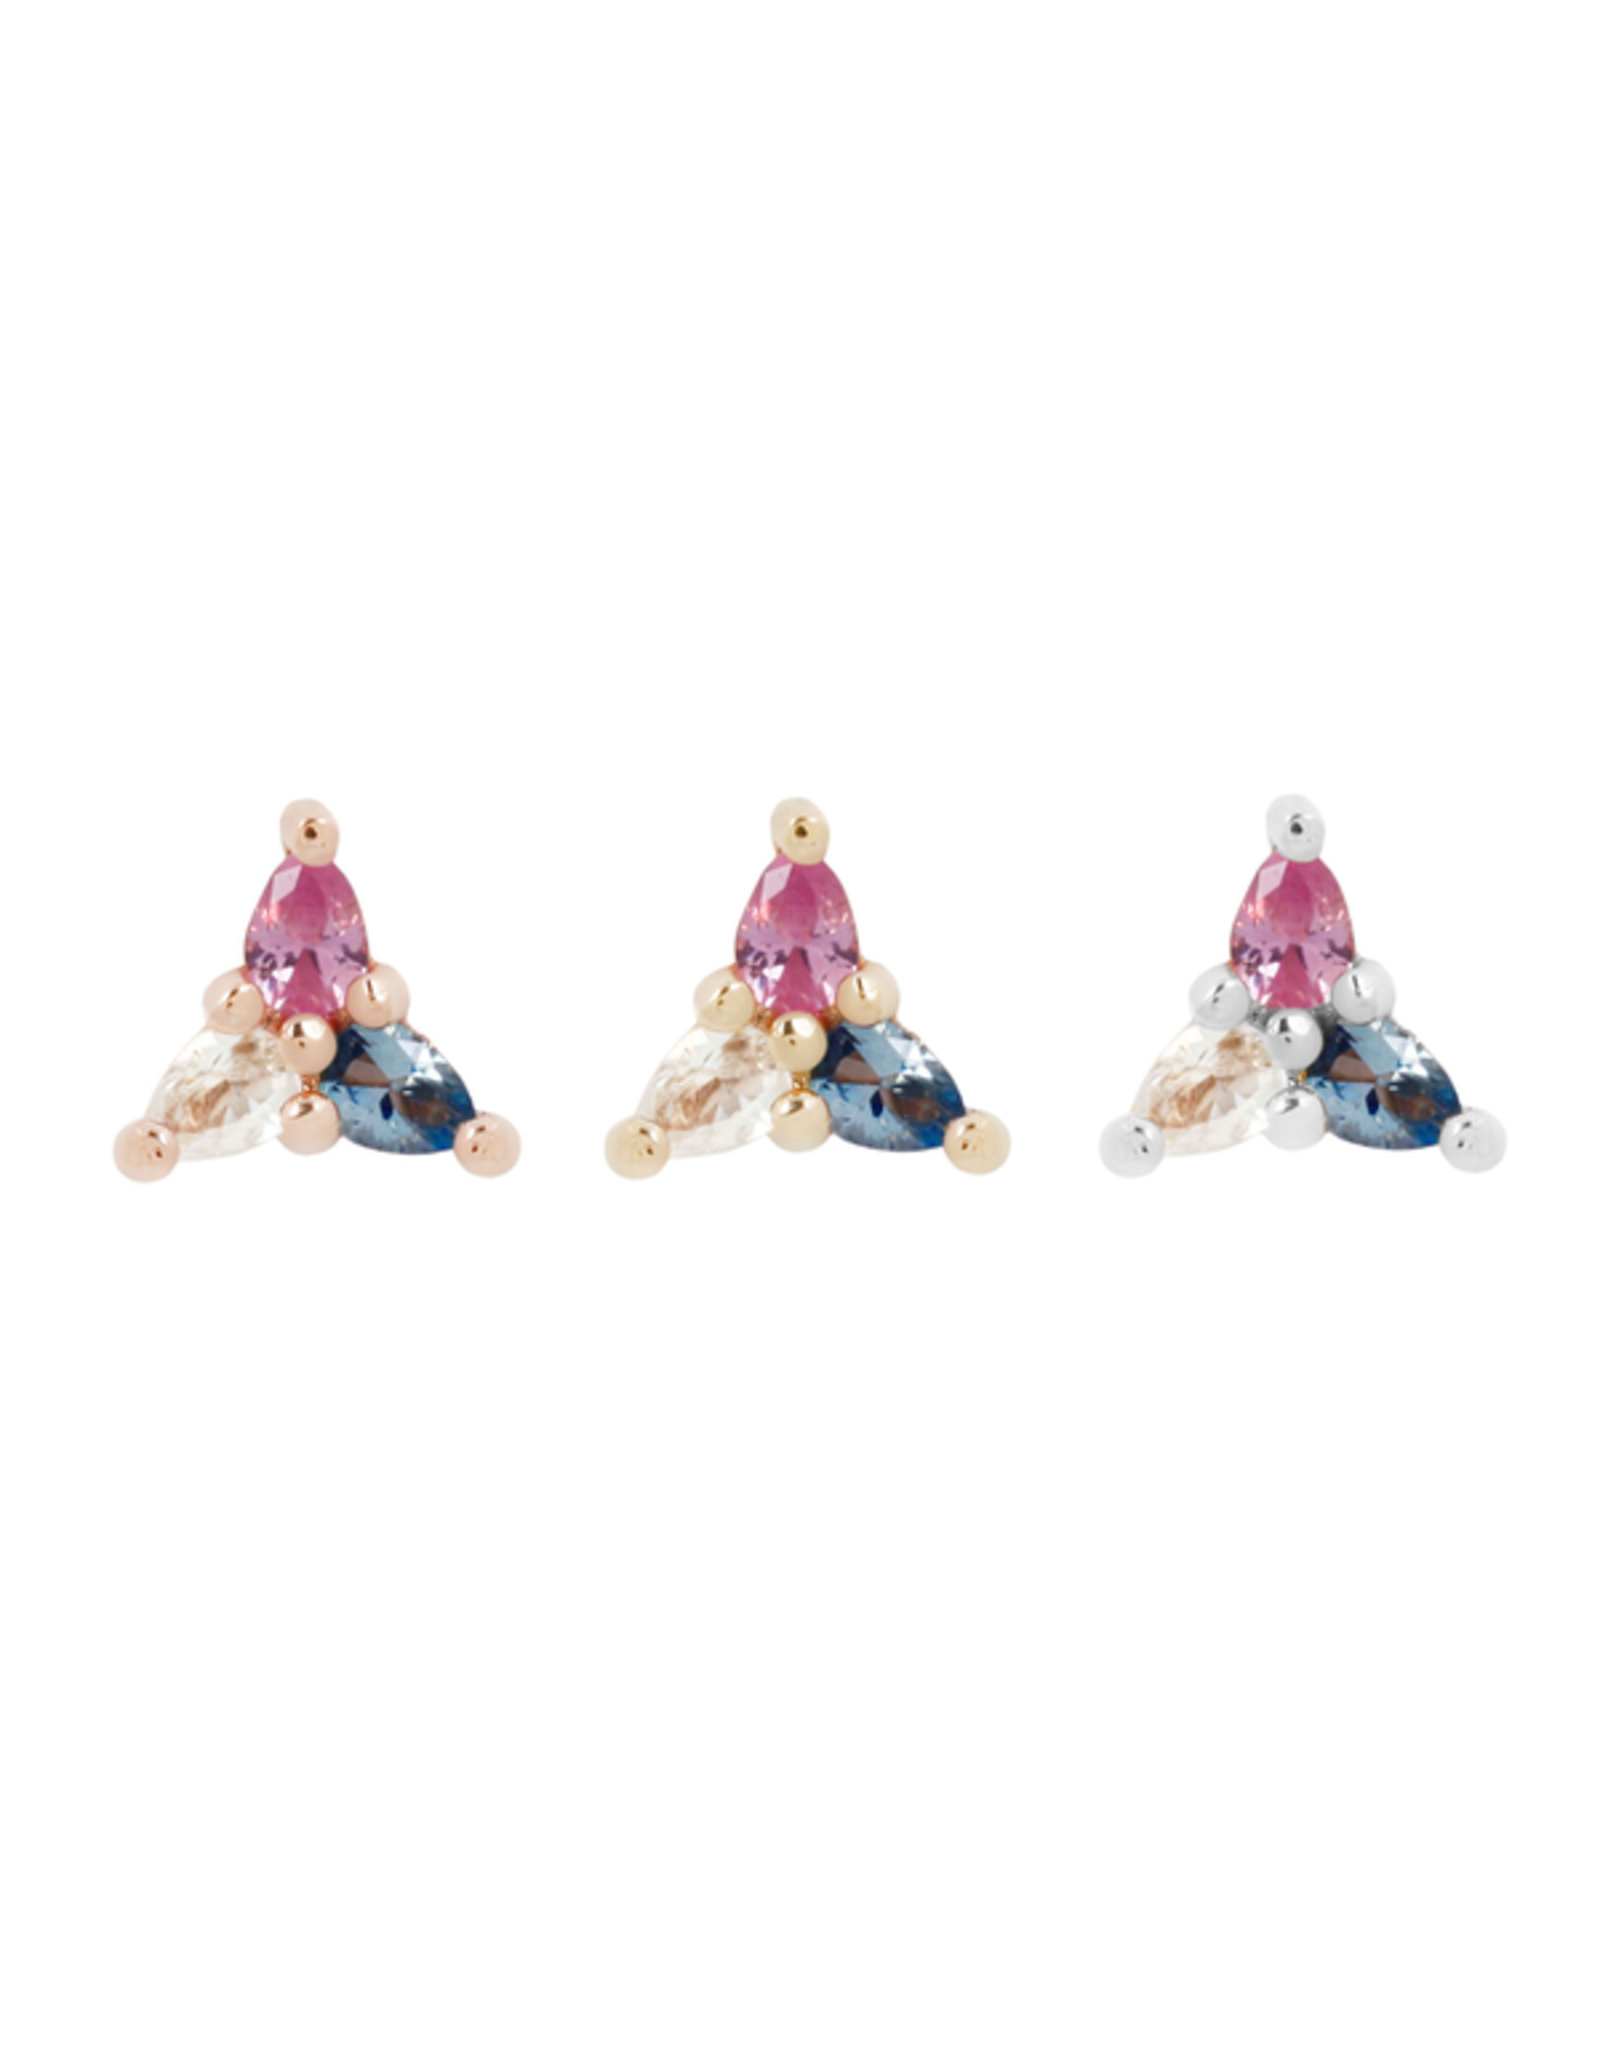 """Buddha Jewelry Organics Buddha Jewelry Organics """"3 Little Pears - Trans Awareness"""" press fit end with pink sapphire, London blue topaz, and white topaz"""